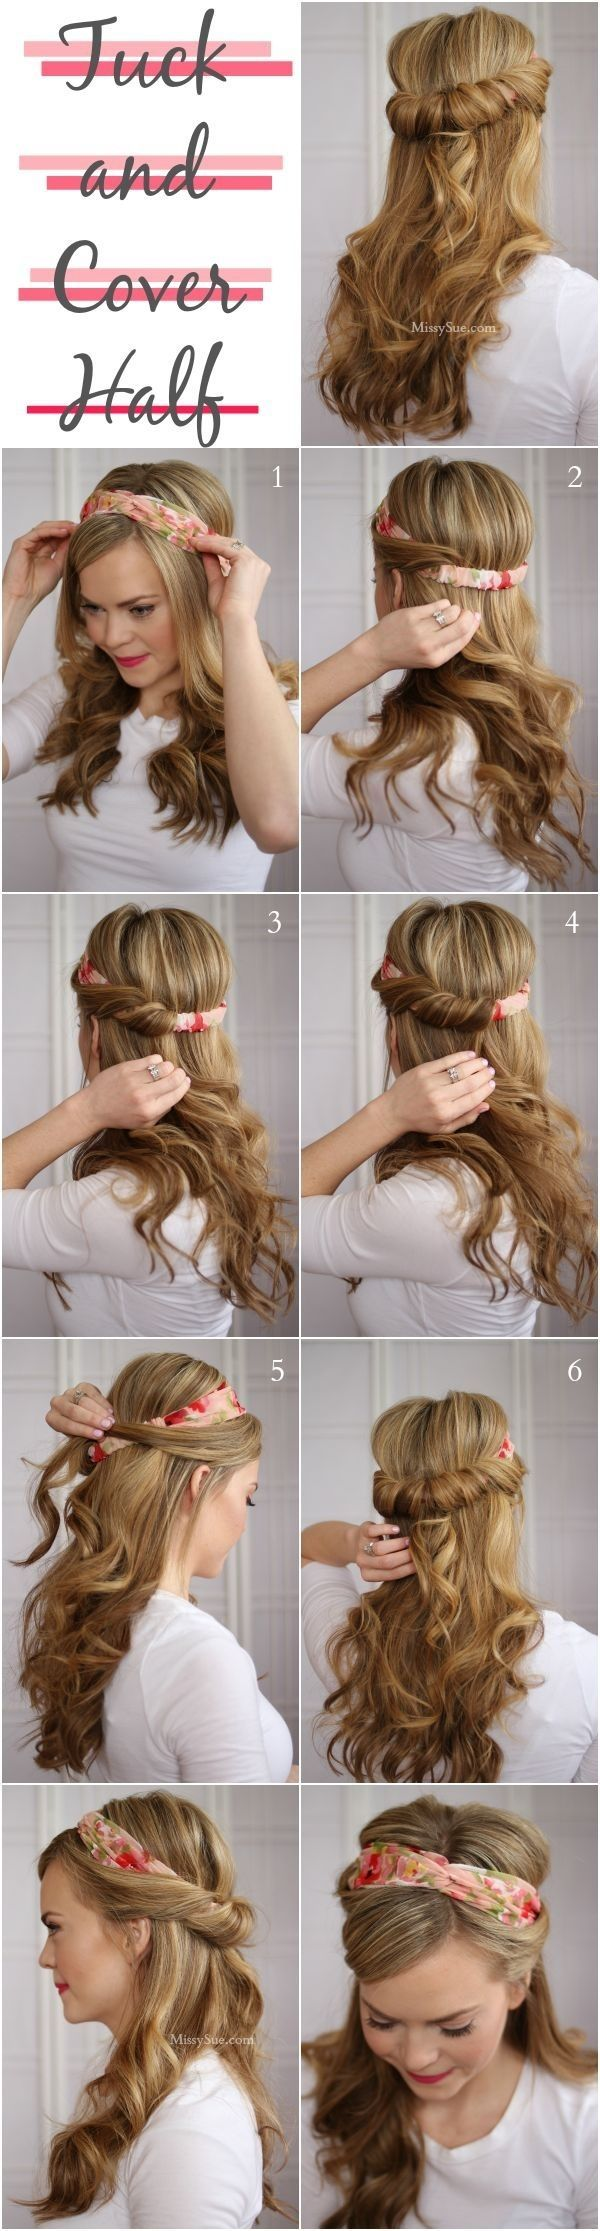 The Half Tuck   Easy and Cute Hairstyles For Long Hair and For Medium Hair by Makeup Tutorials http://makeuptutorials.com/easy-hairstyles-for-work/